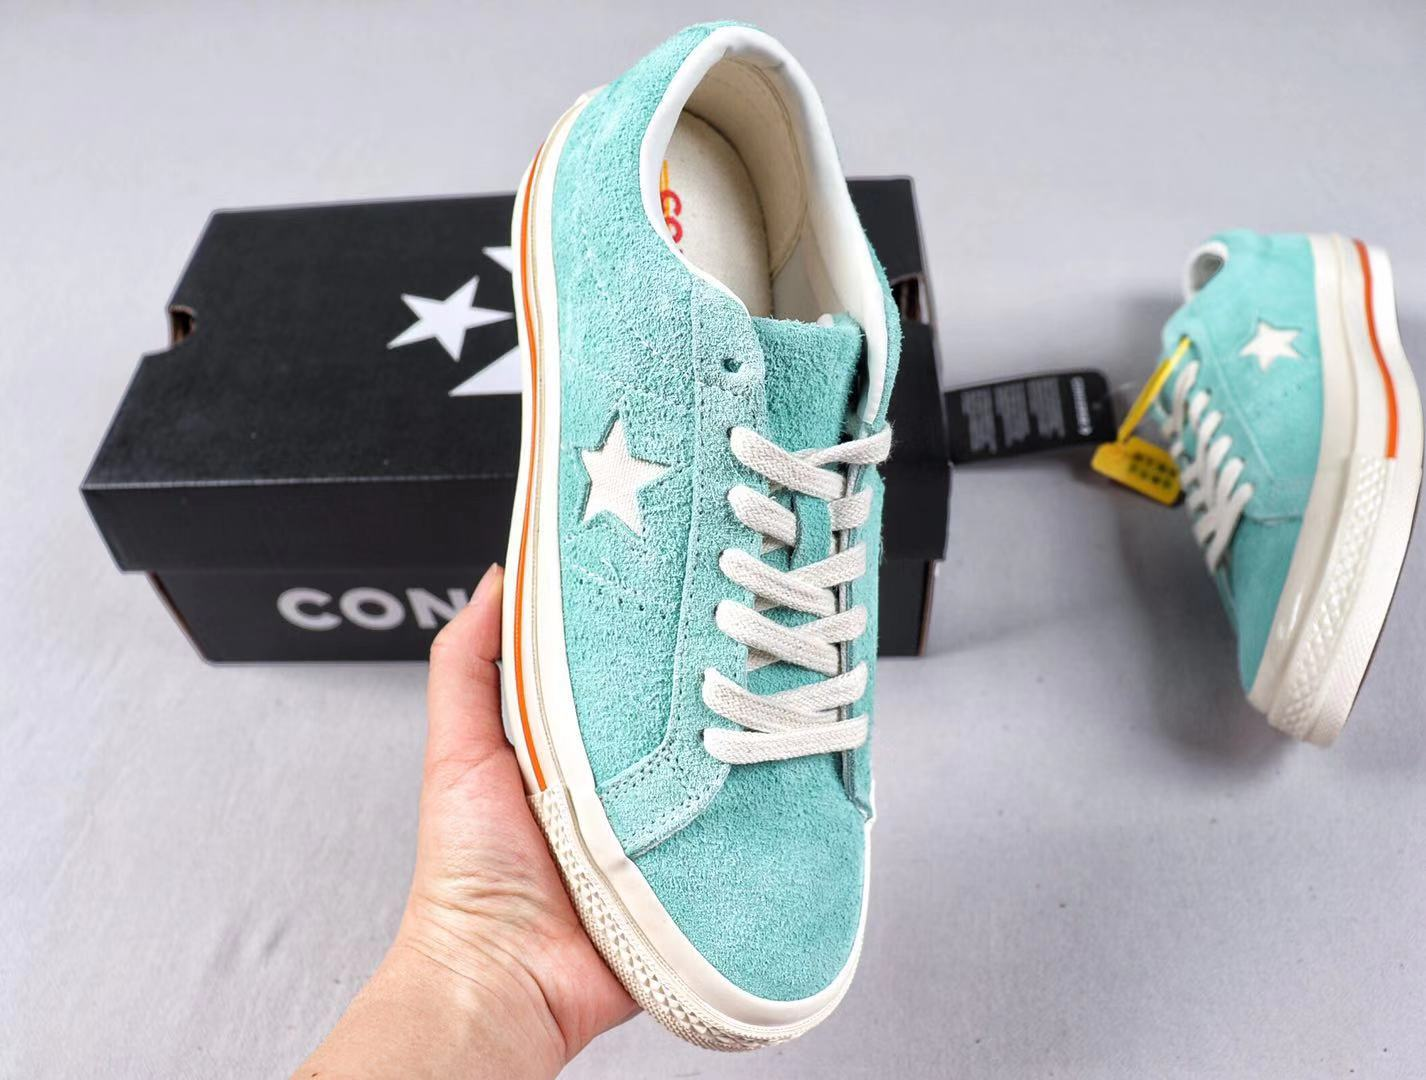 Converse One Star Cali Suede Low Top Sneakers Bold Jade For Sale 164217C